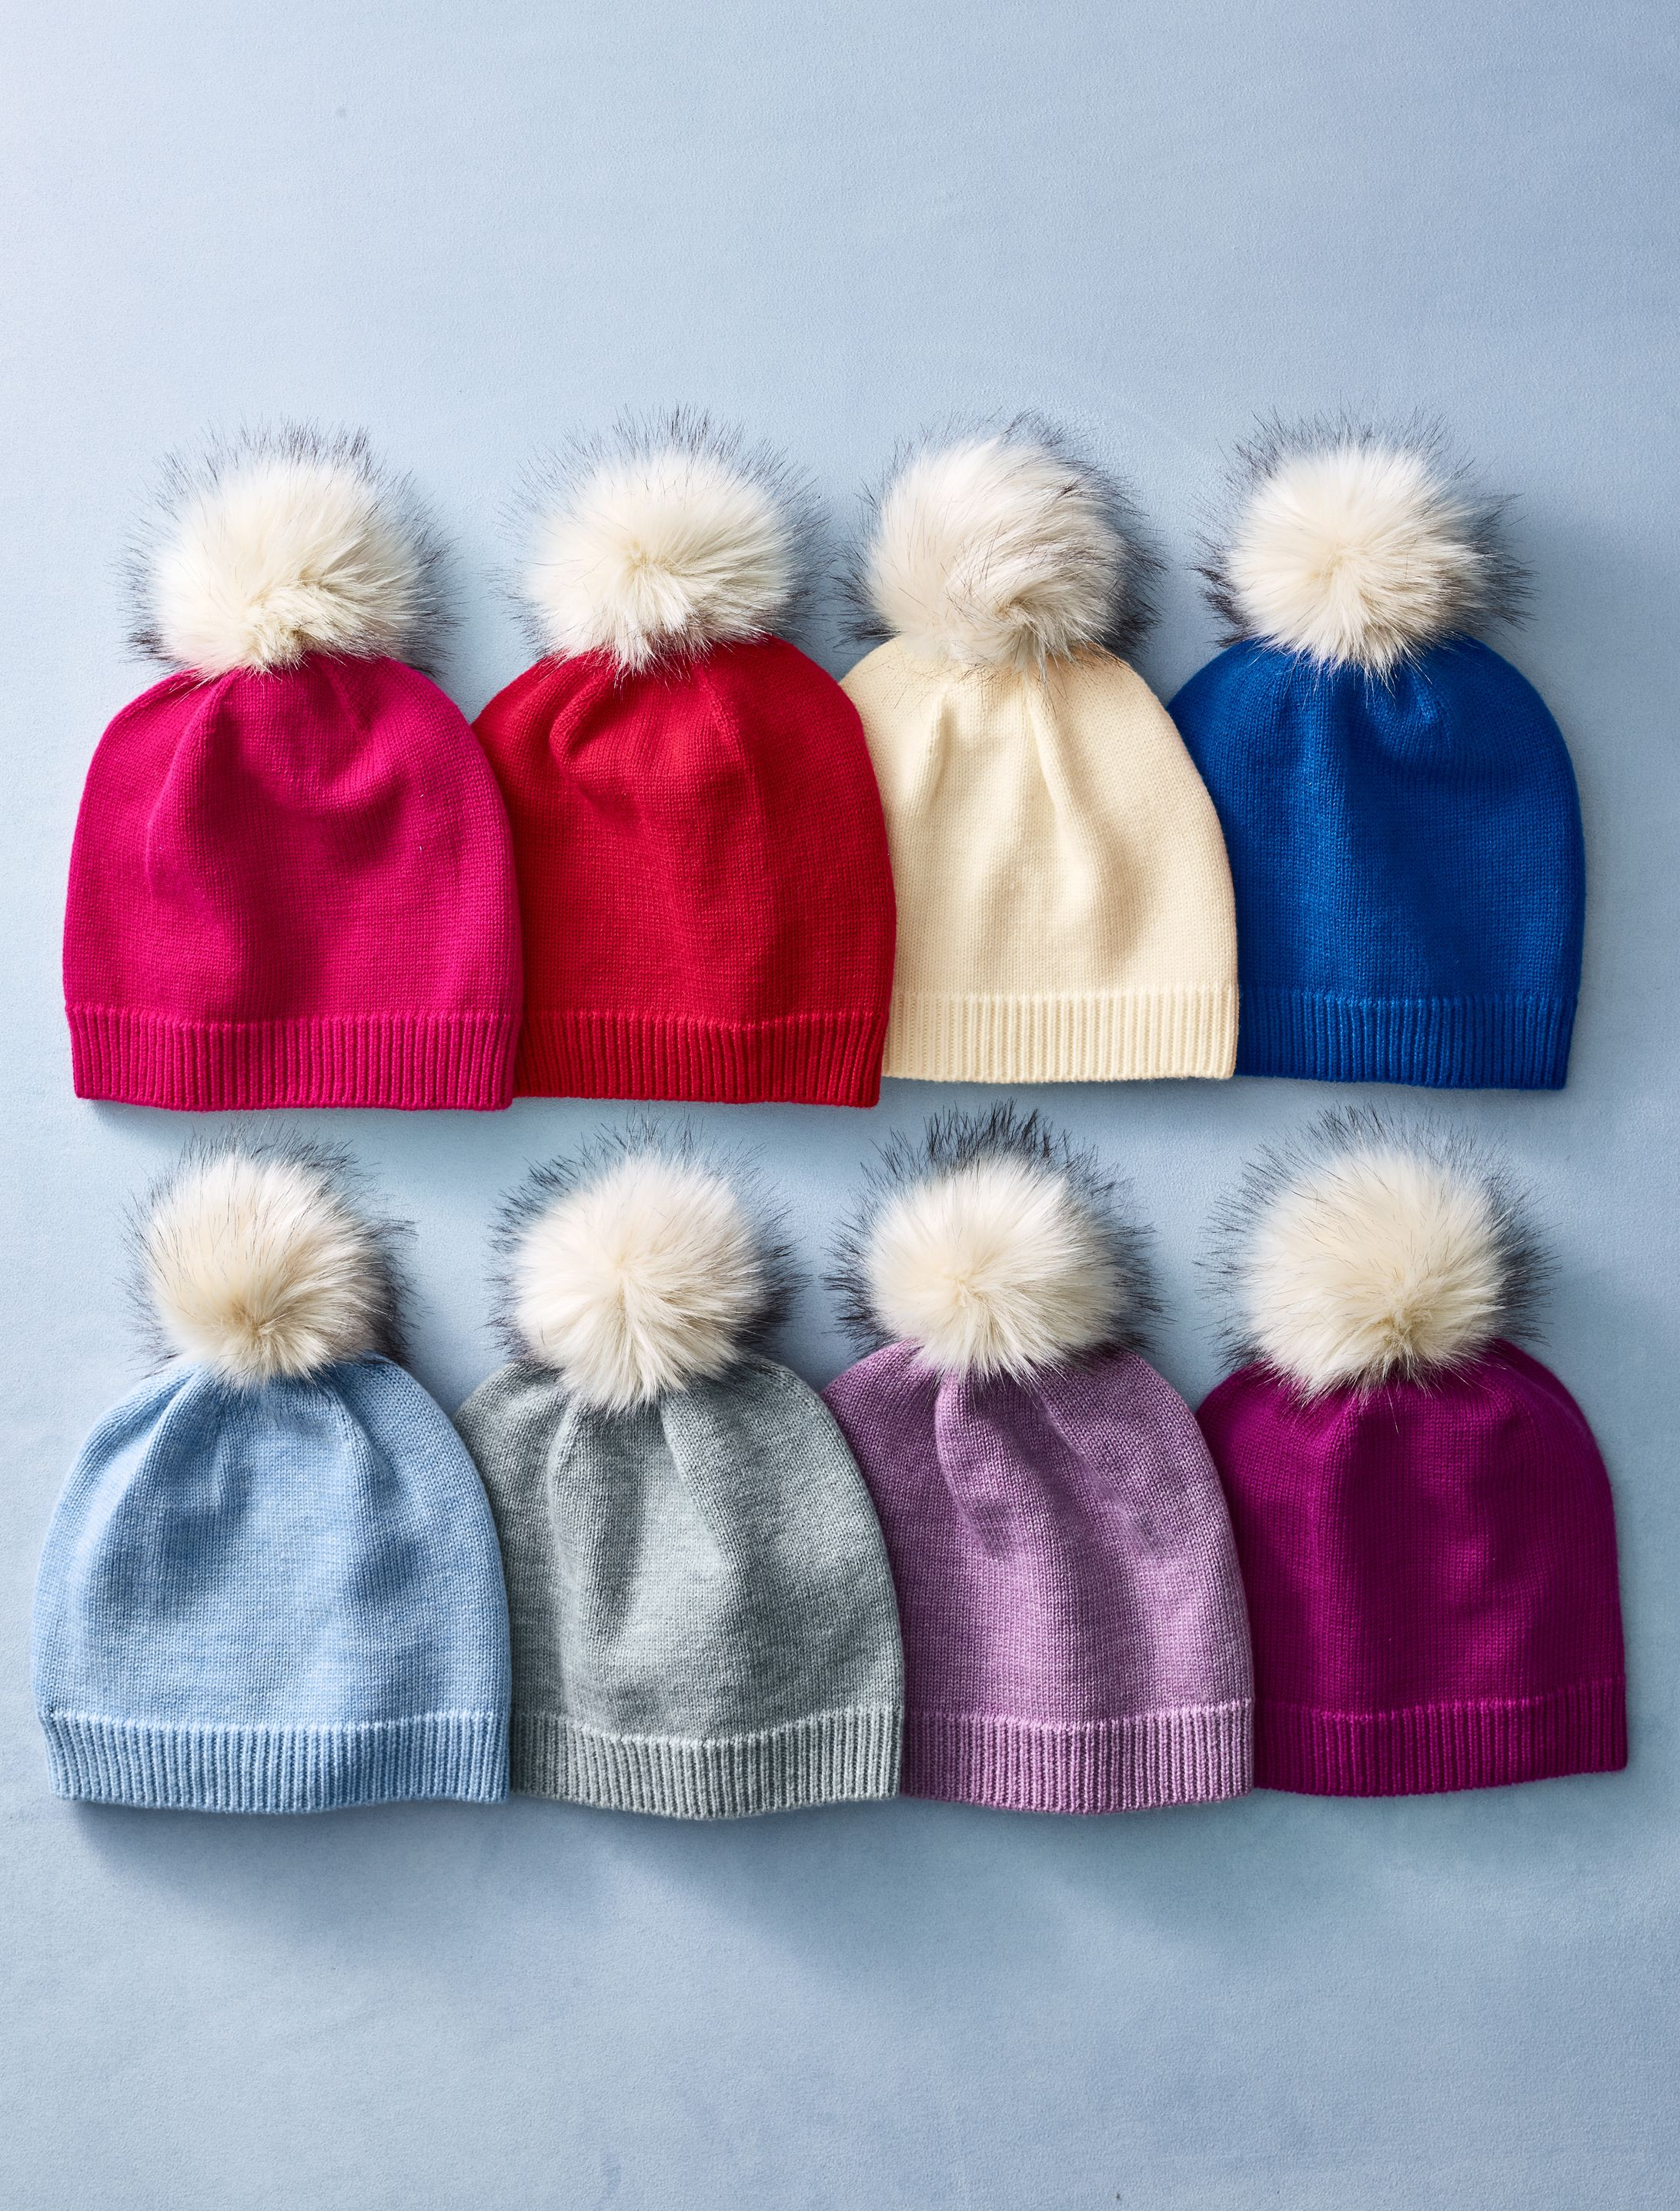 ef0252b2afe3 Part of our mix and match cold-weather collection, this pom-pom hat will  keep your head warm in a playfully-stylish way. Available in prismatic hues  with ...